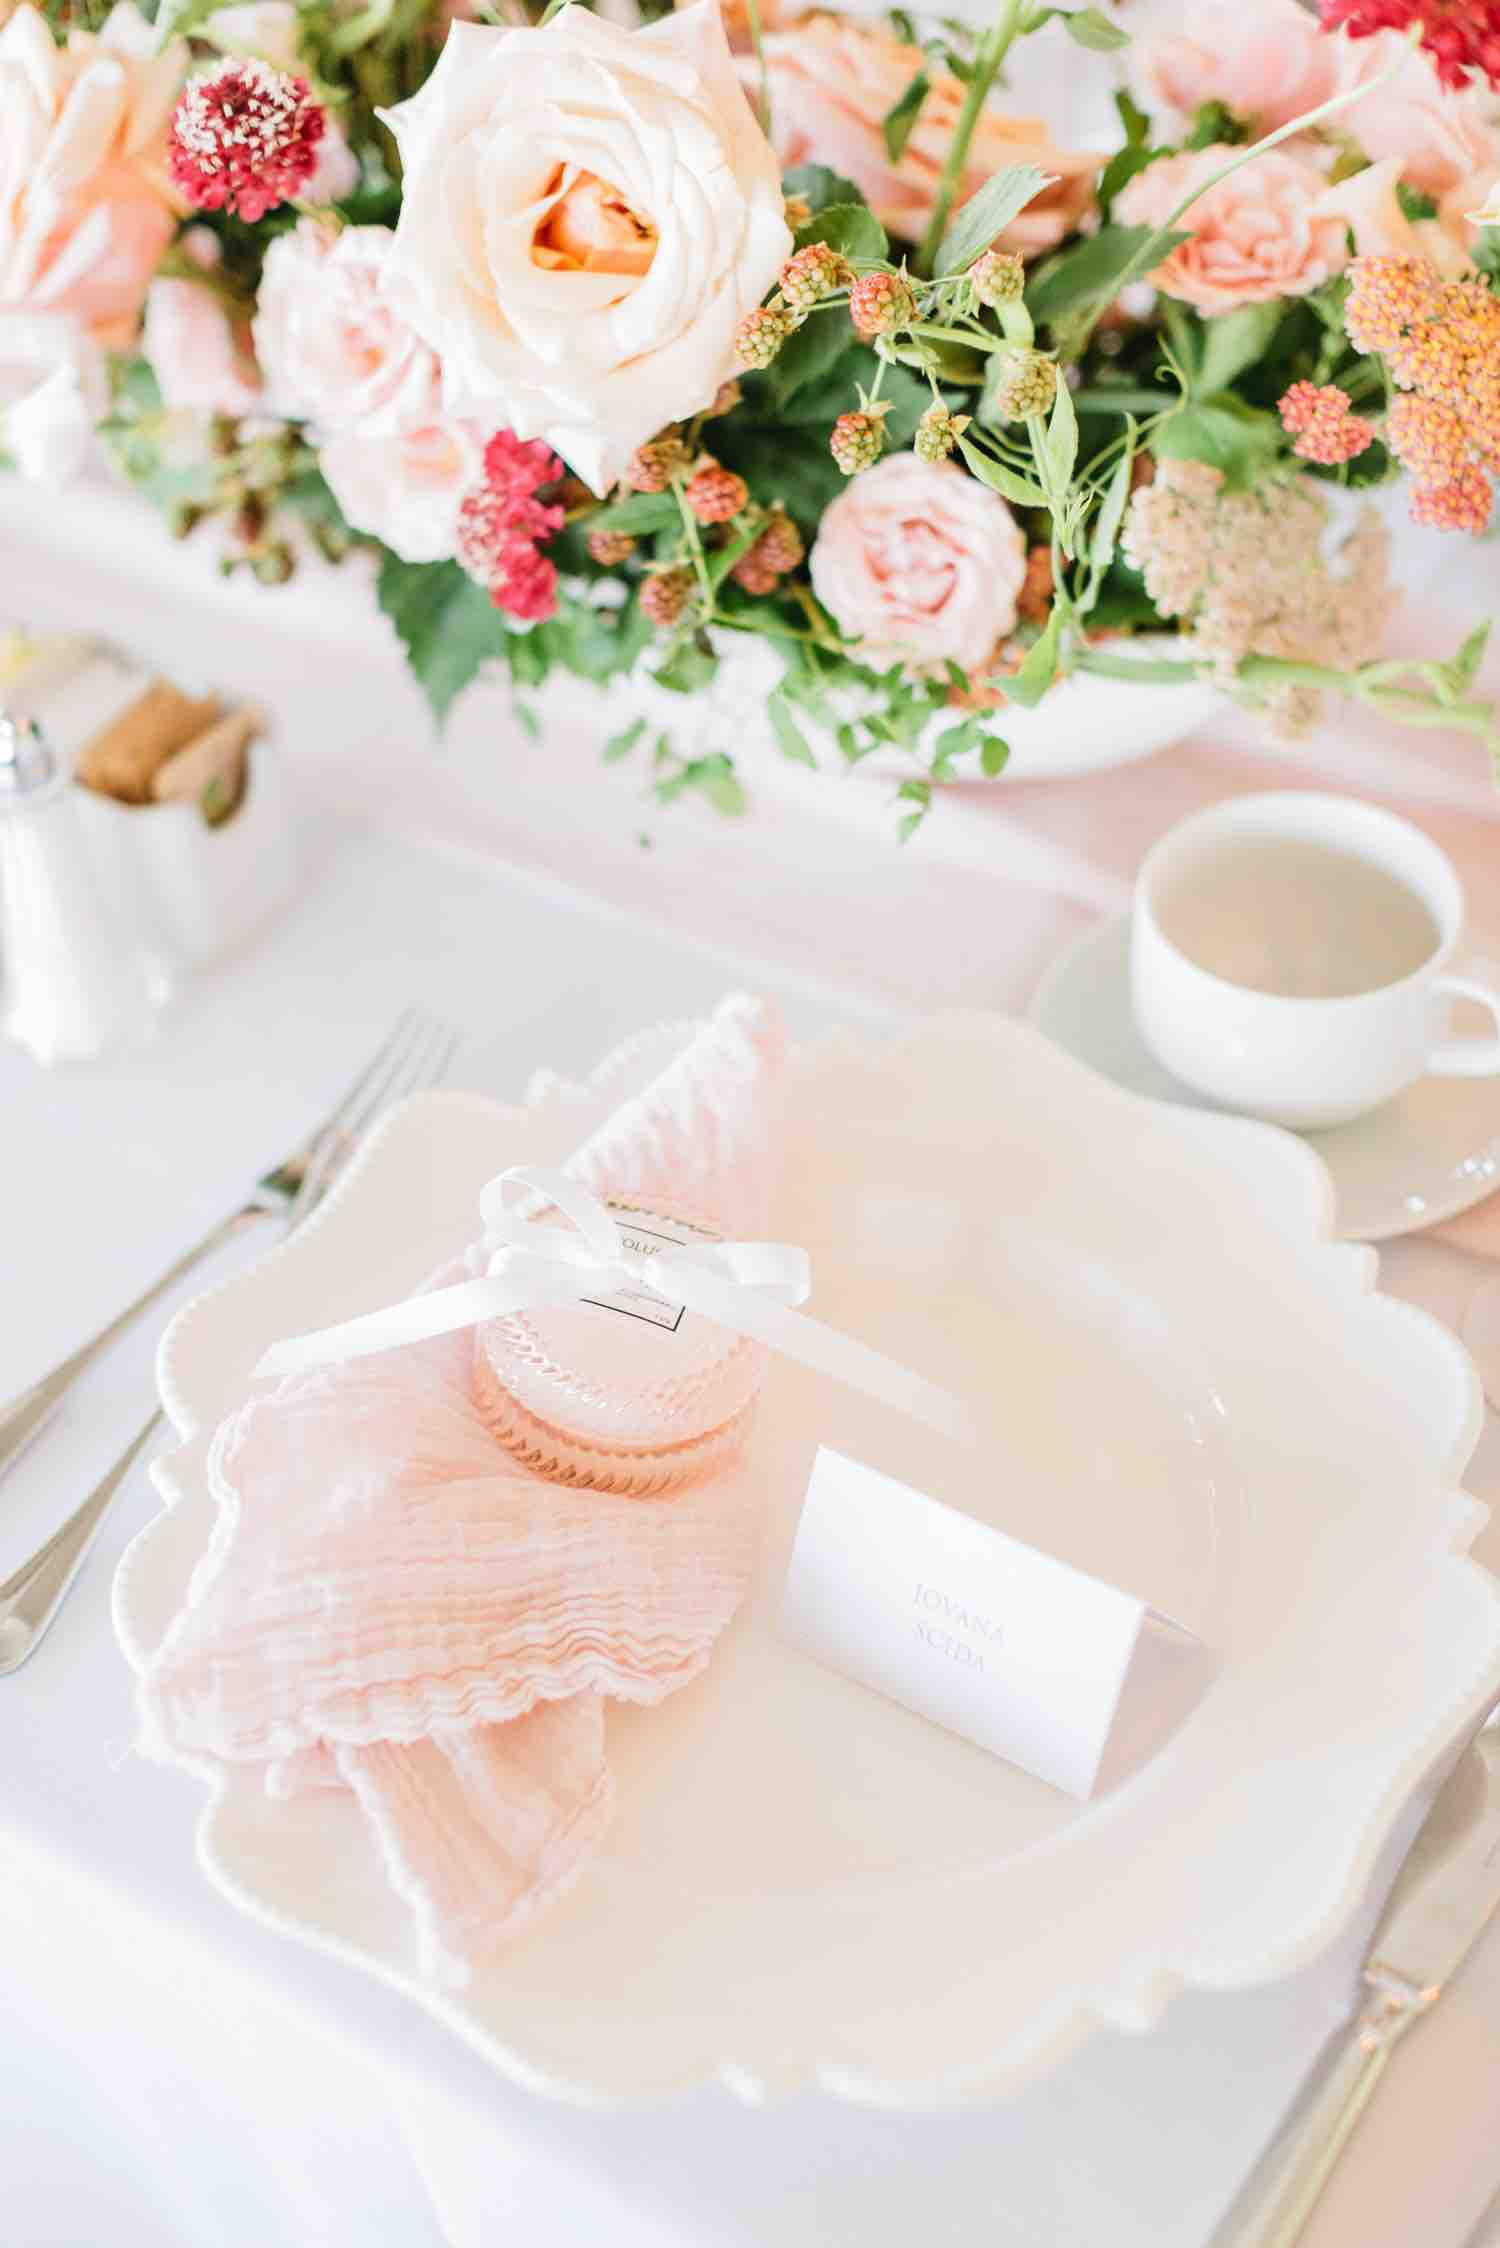 Table details of plate and cutlery at Eagles Nest Golf Club bridal shower